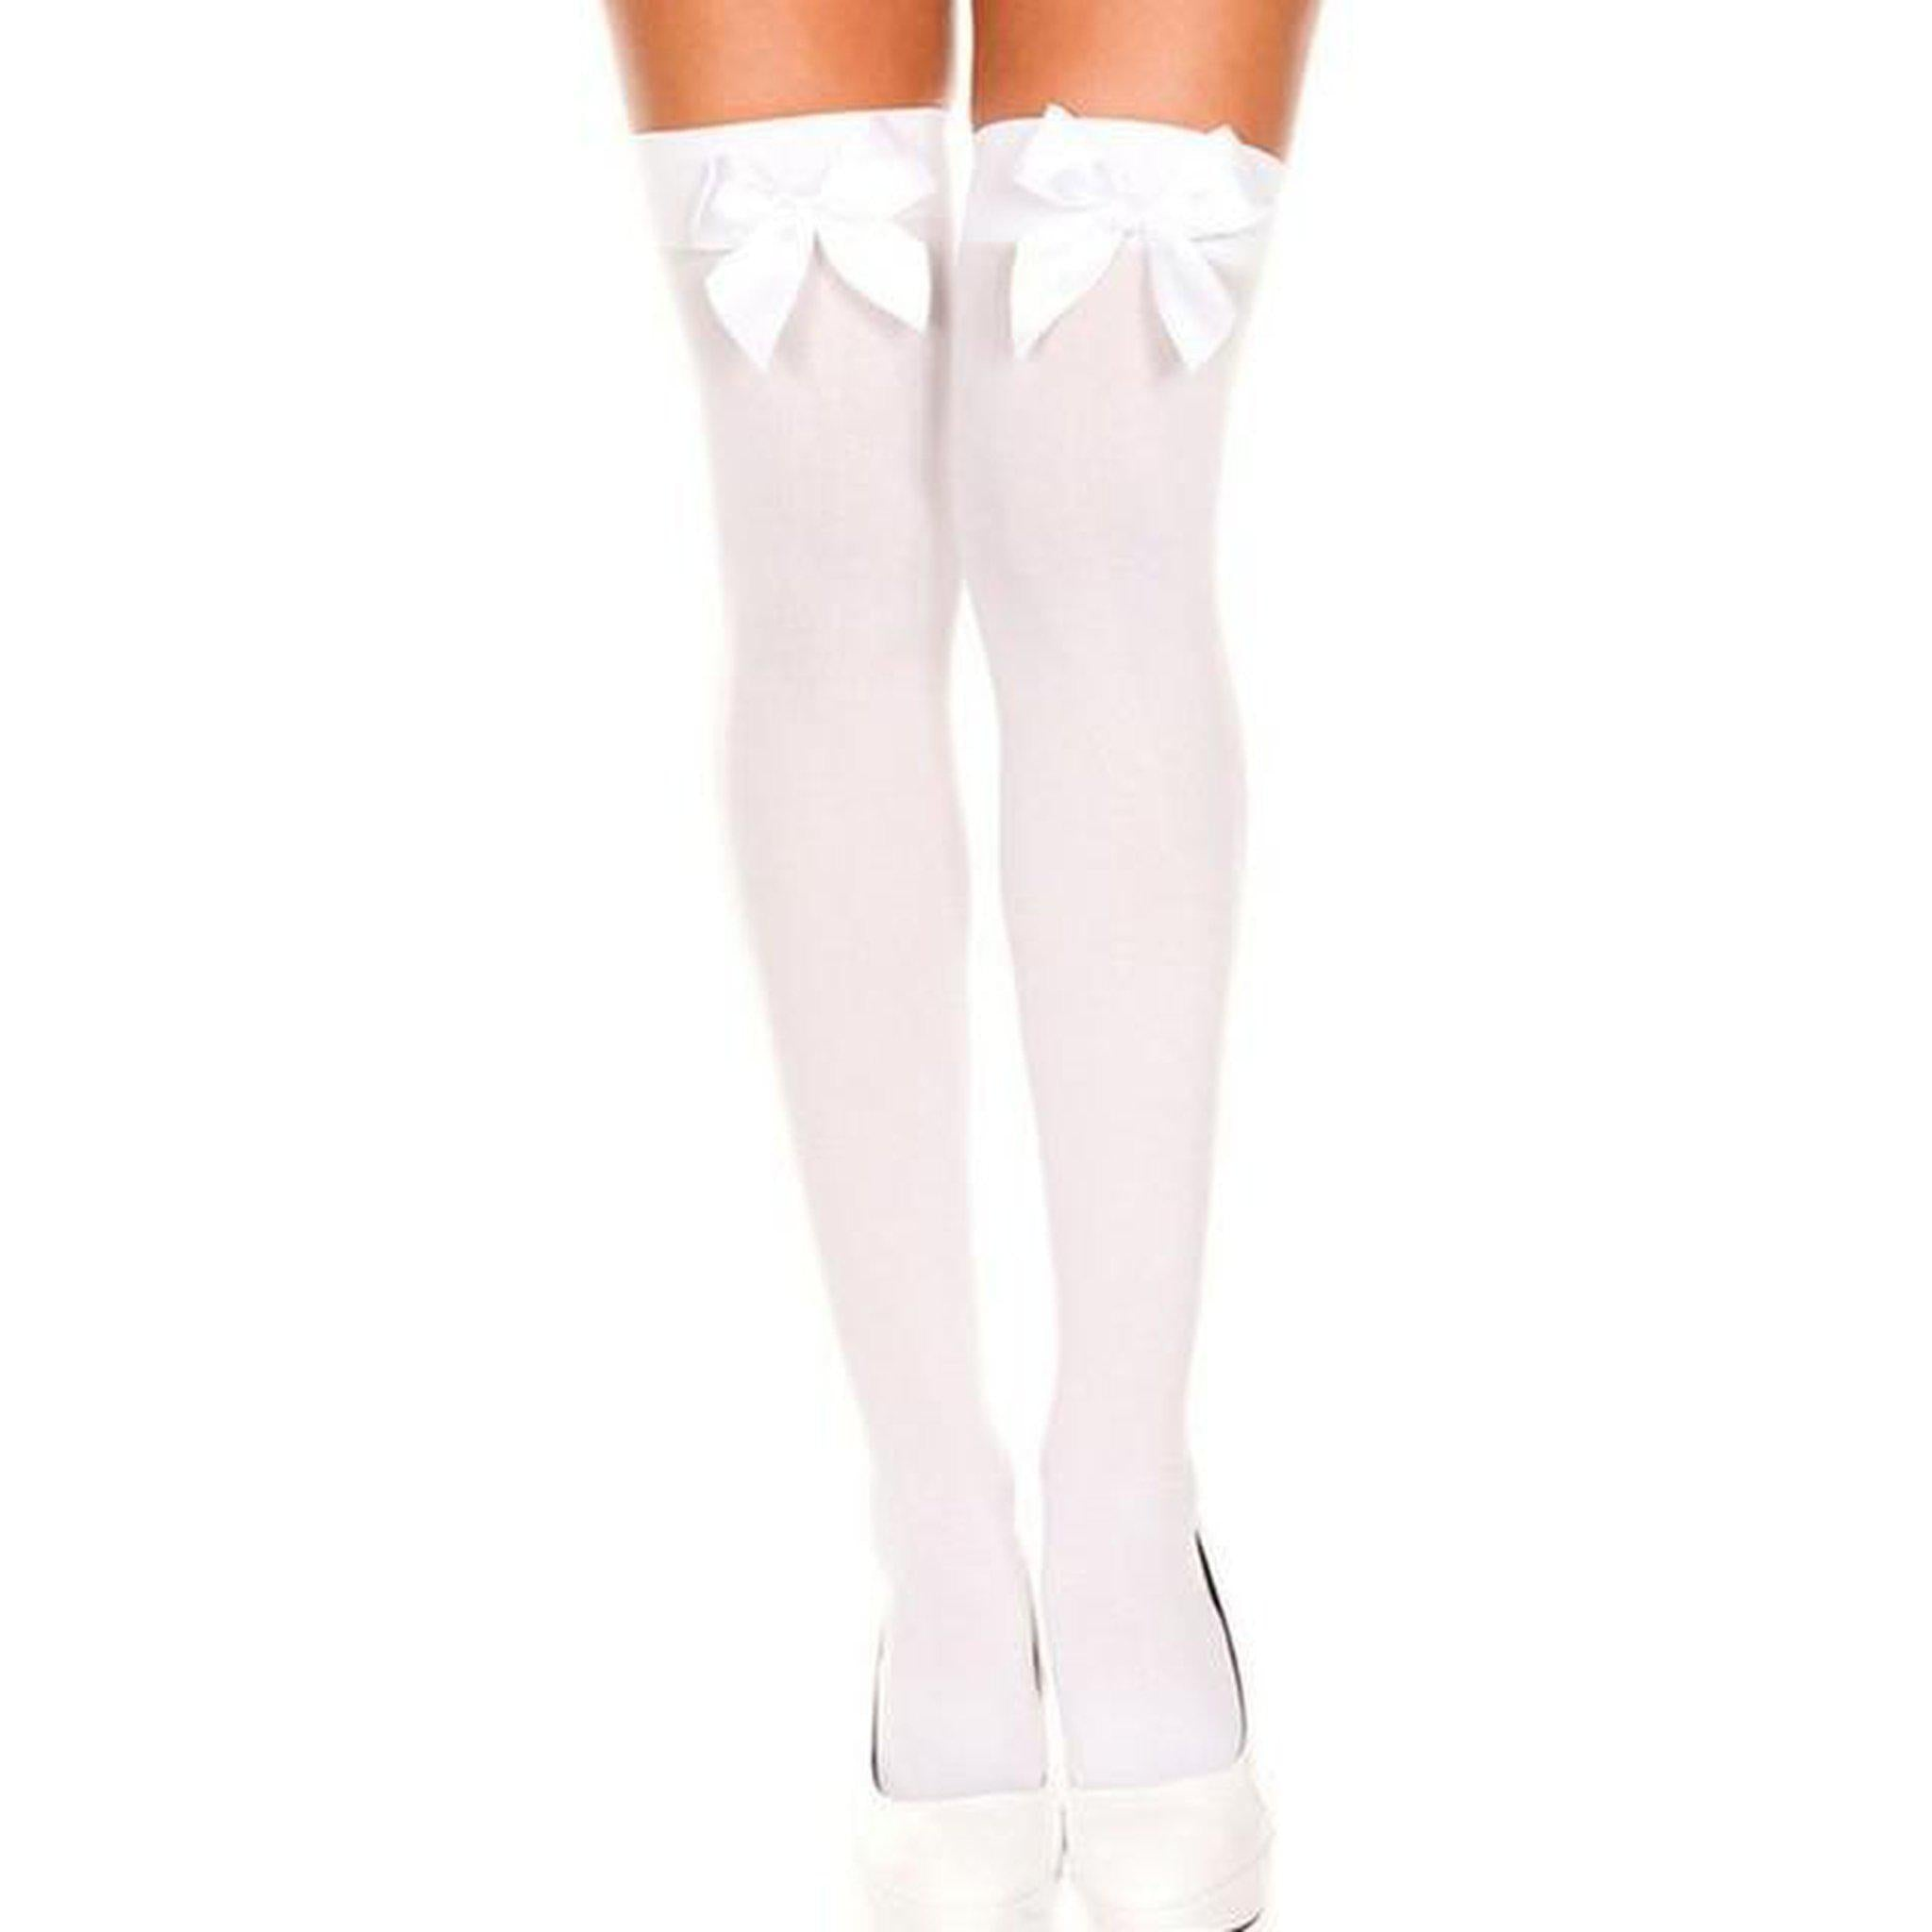 Sexy Bow Thigh High Stockings-Good Girl xox-White-buy-bdsm-bondage-gear-tools-toys-online-good-girl-xox